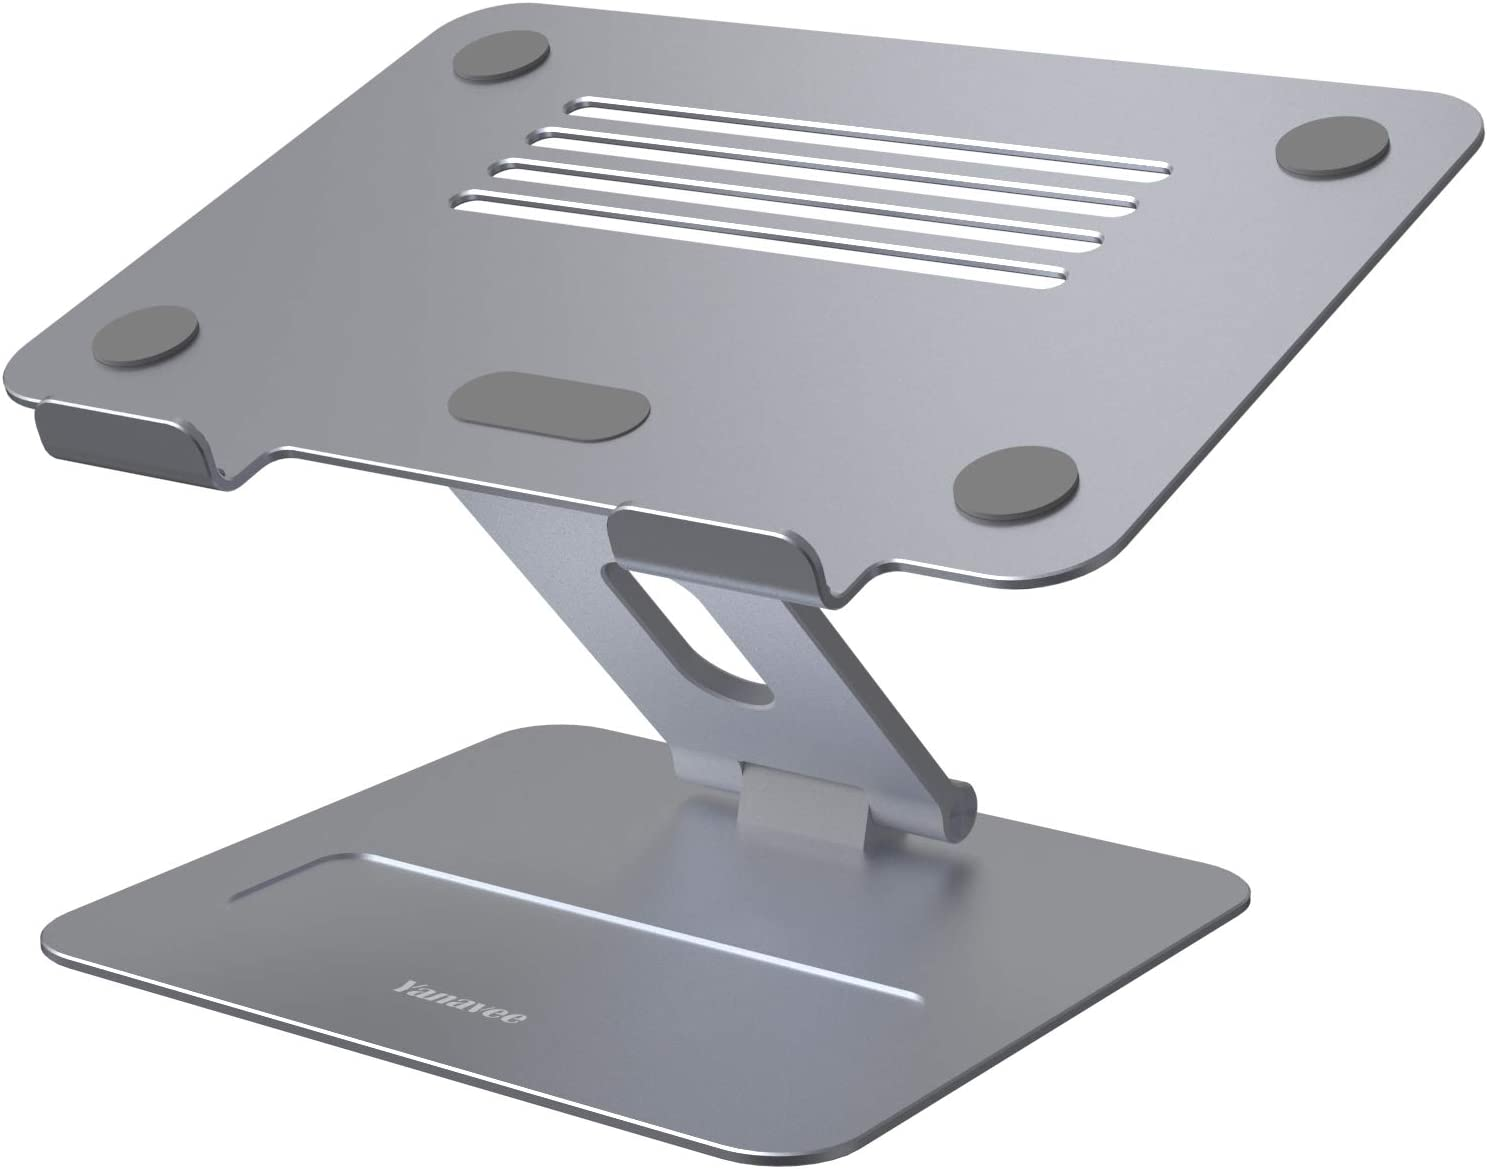 Max 60% OFF Laptop Stand Max 79% OFF Yanavee Height E for Desk Adjustable